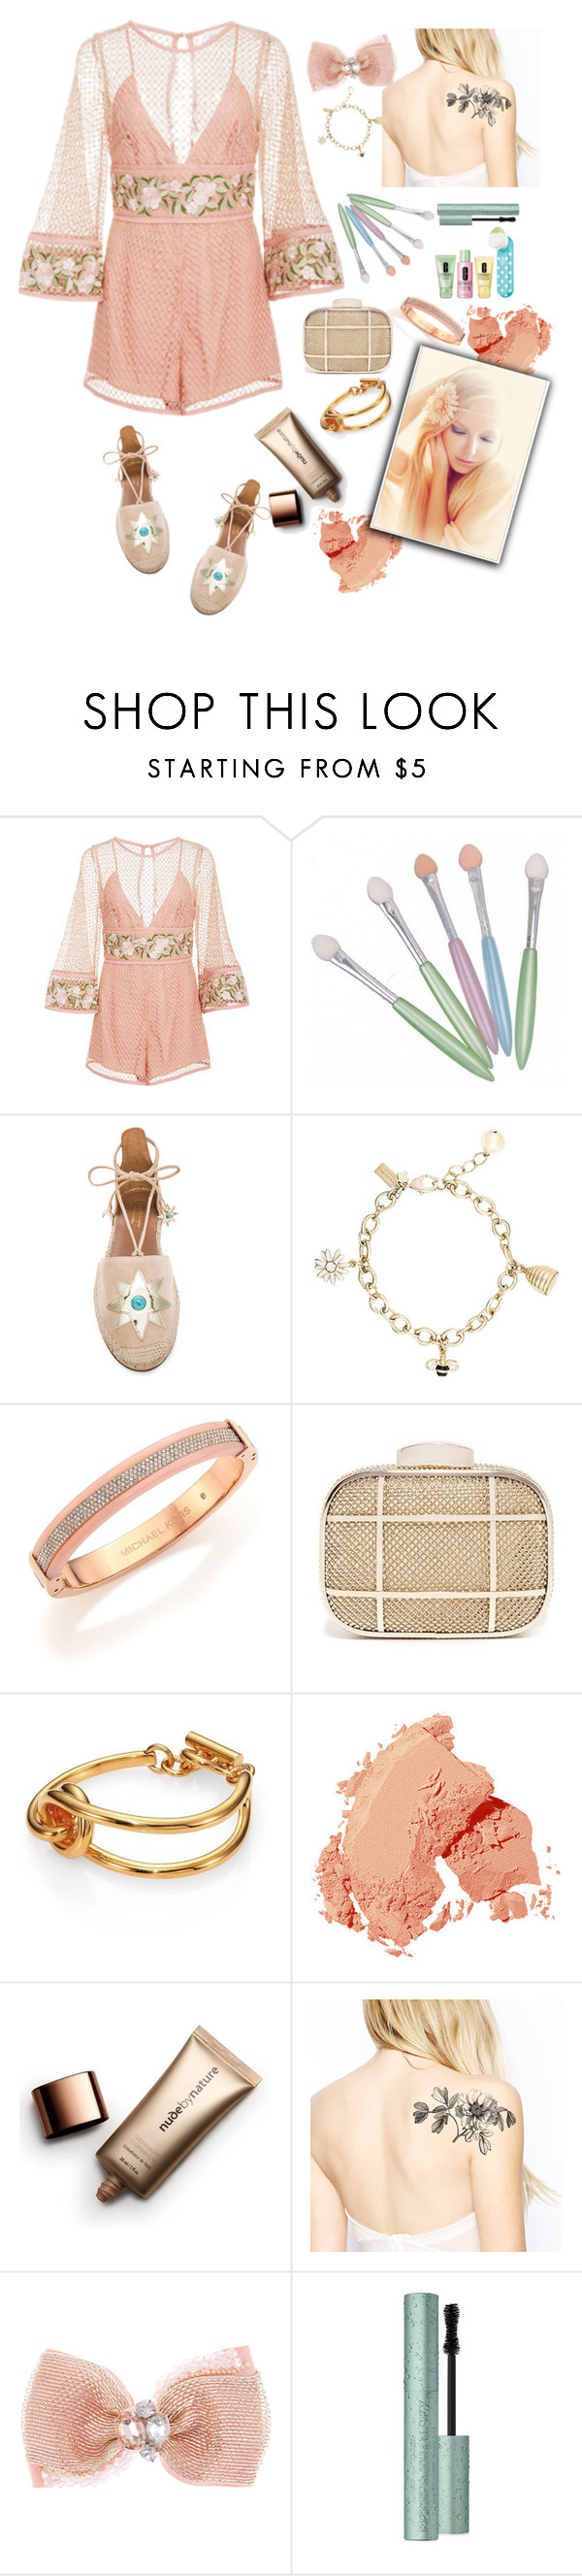 """Overalls"" by grinevagh ❤ liked on Polyvore featuring Alice McCall, Aquazzura, Kate Spade, Michael Kors, Whiting & Davis, Chloé, Bobbi Brown Cosmetics, Nude by Nature, Monsoon and Too Faced Cosmetics"